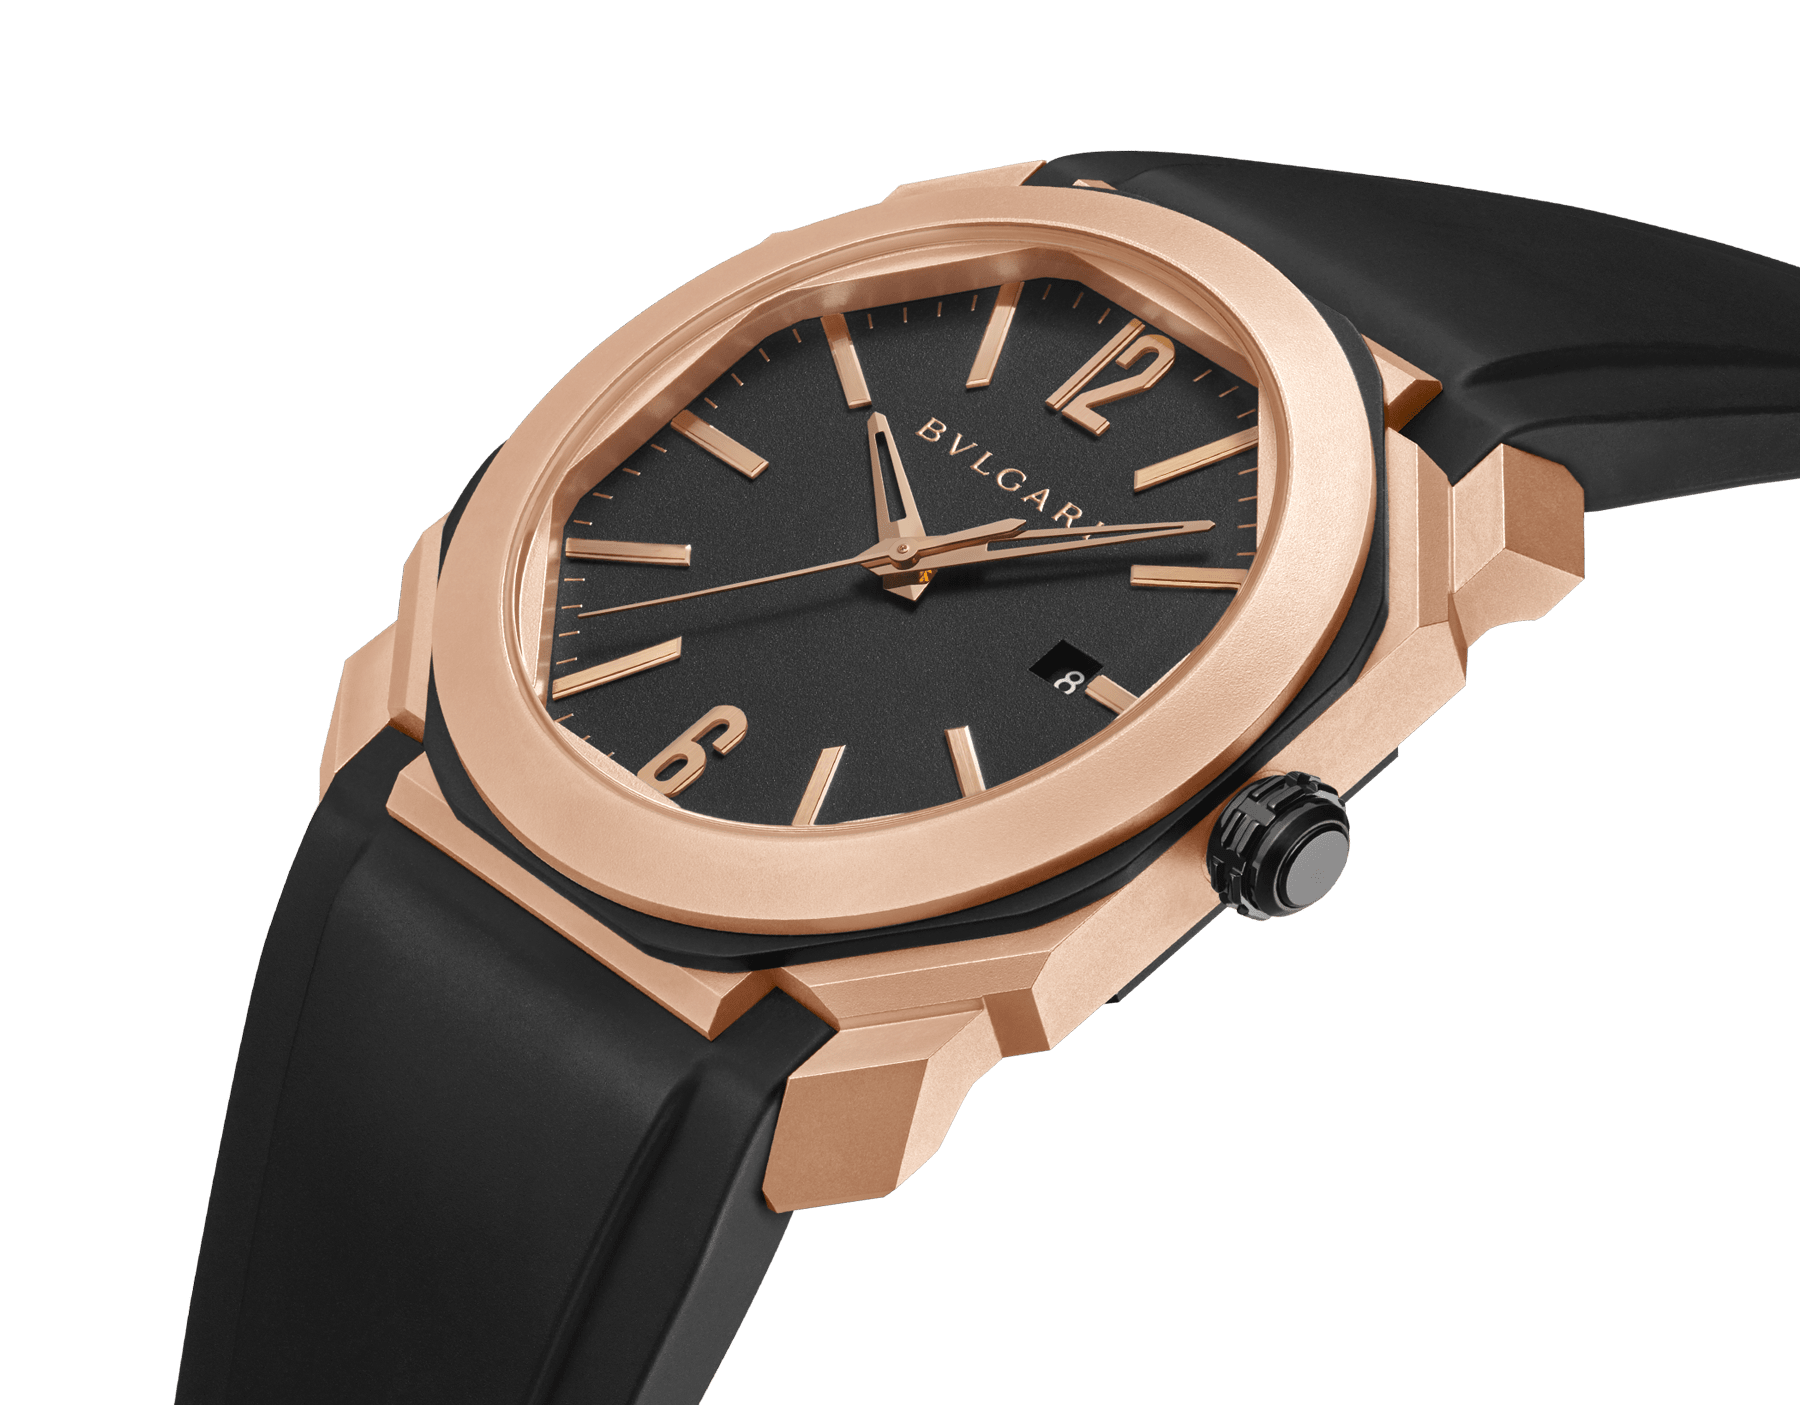 Octo L'Originale watch with mechanical manufacture movement, automatic winding and date, case in sandblasted steel with Diamond Like Carbon treatment and 18 kt rose gold, transparent case back, anthracite dial and black rubber bracelet. Water-resistant up to 100 metres 103203 image 2